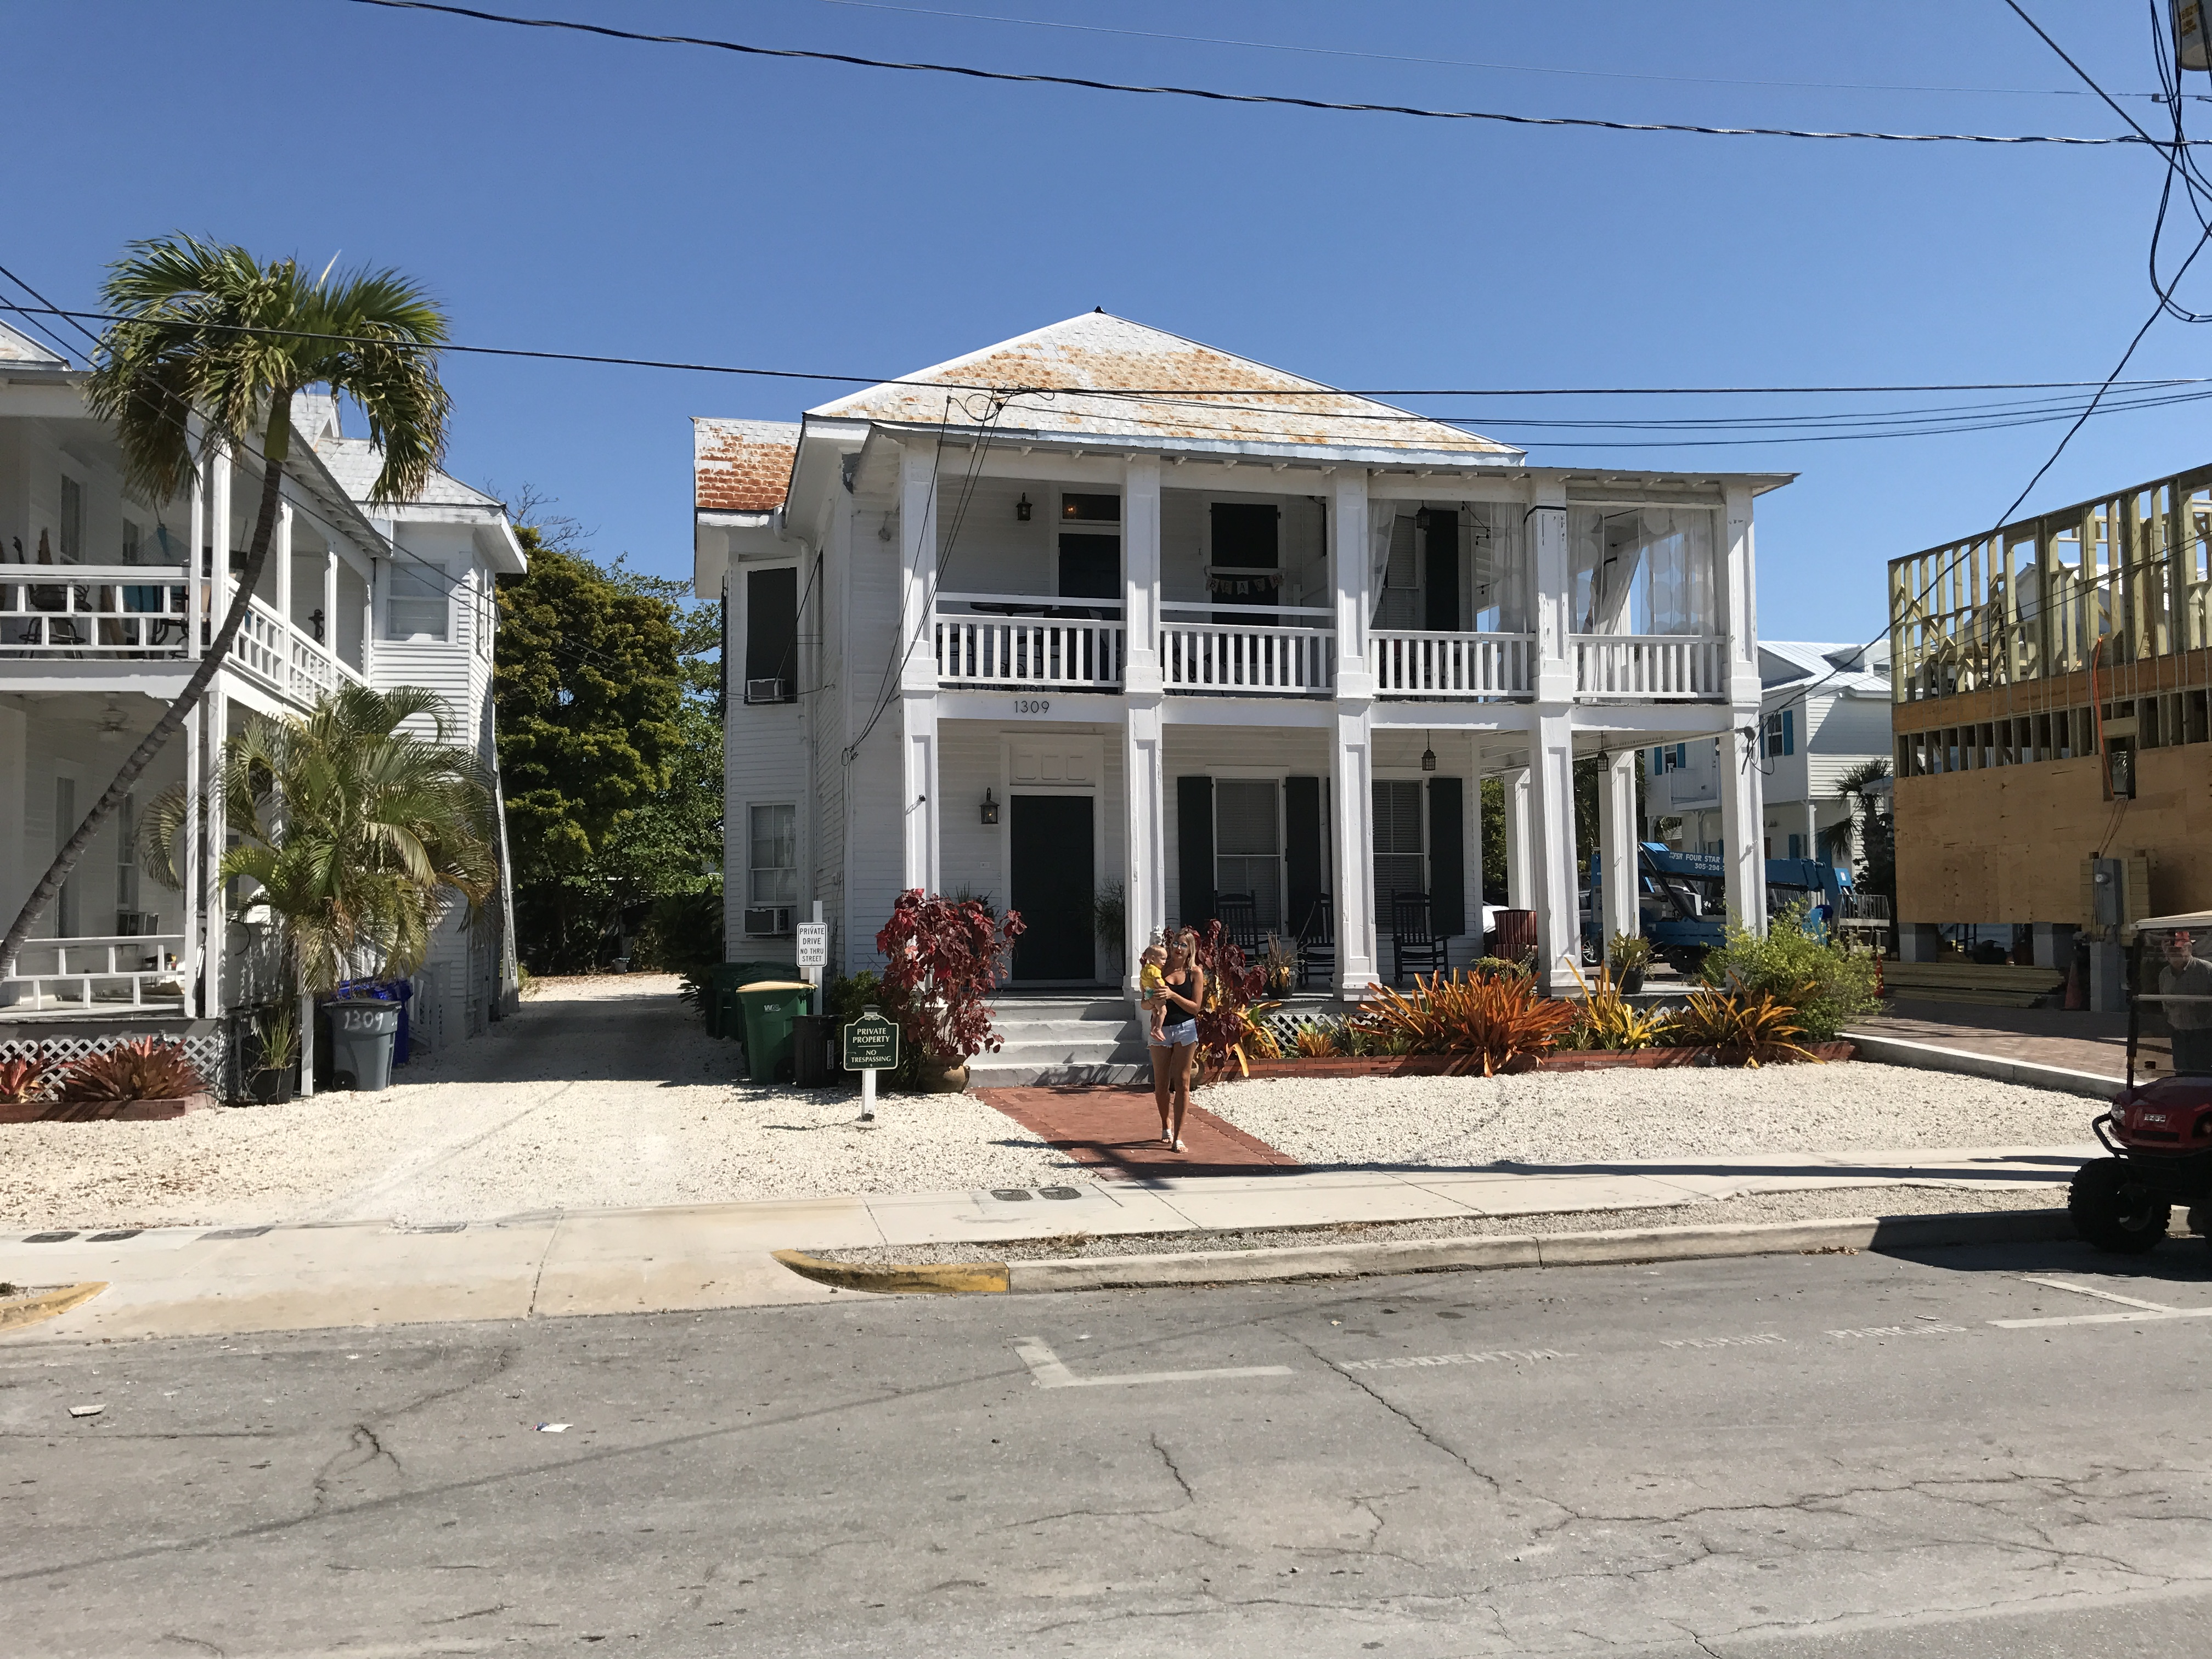 Old town Key west miami Florida